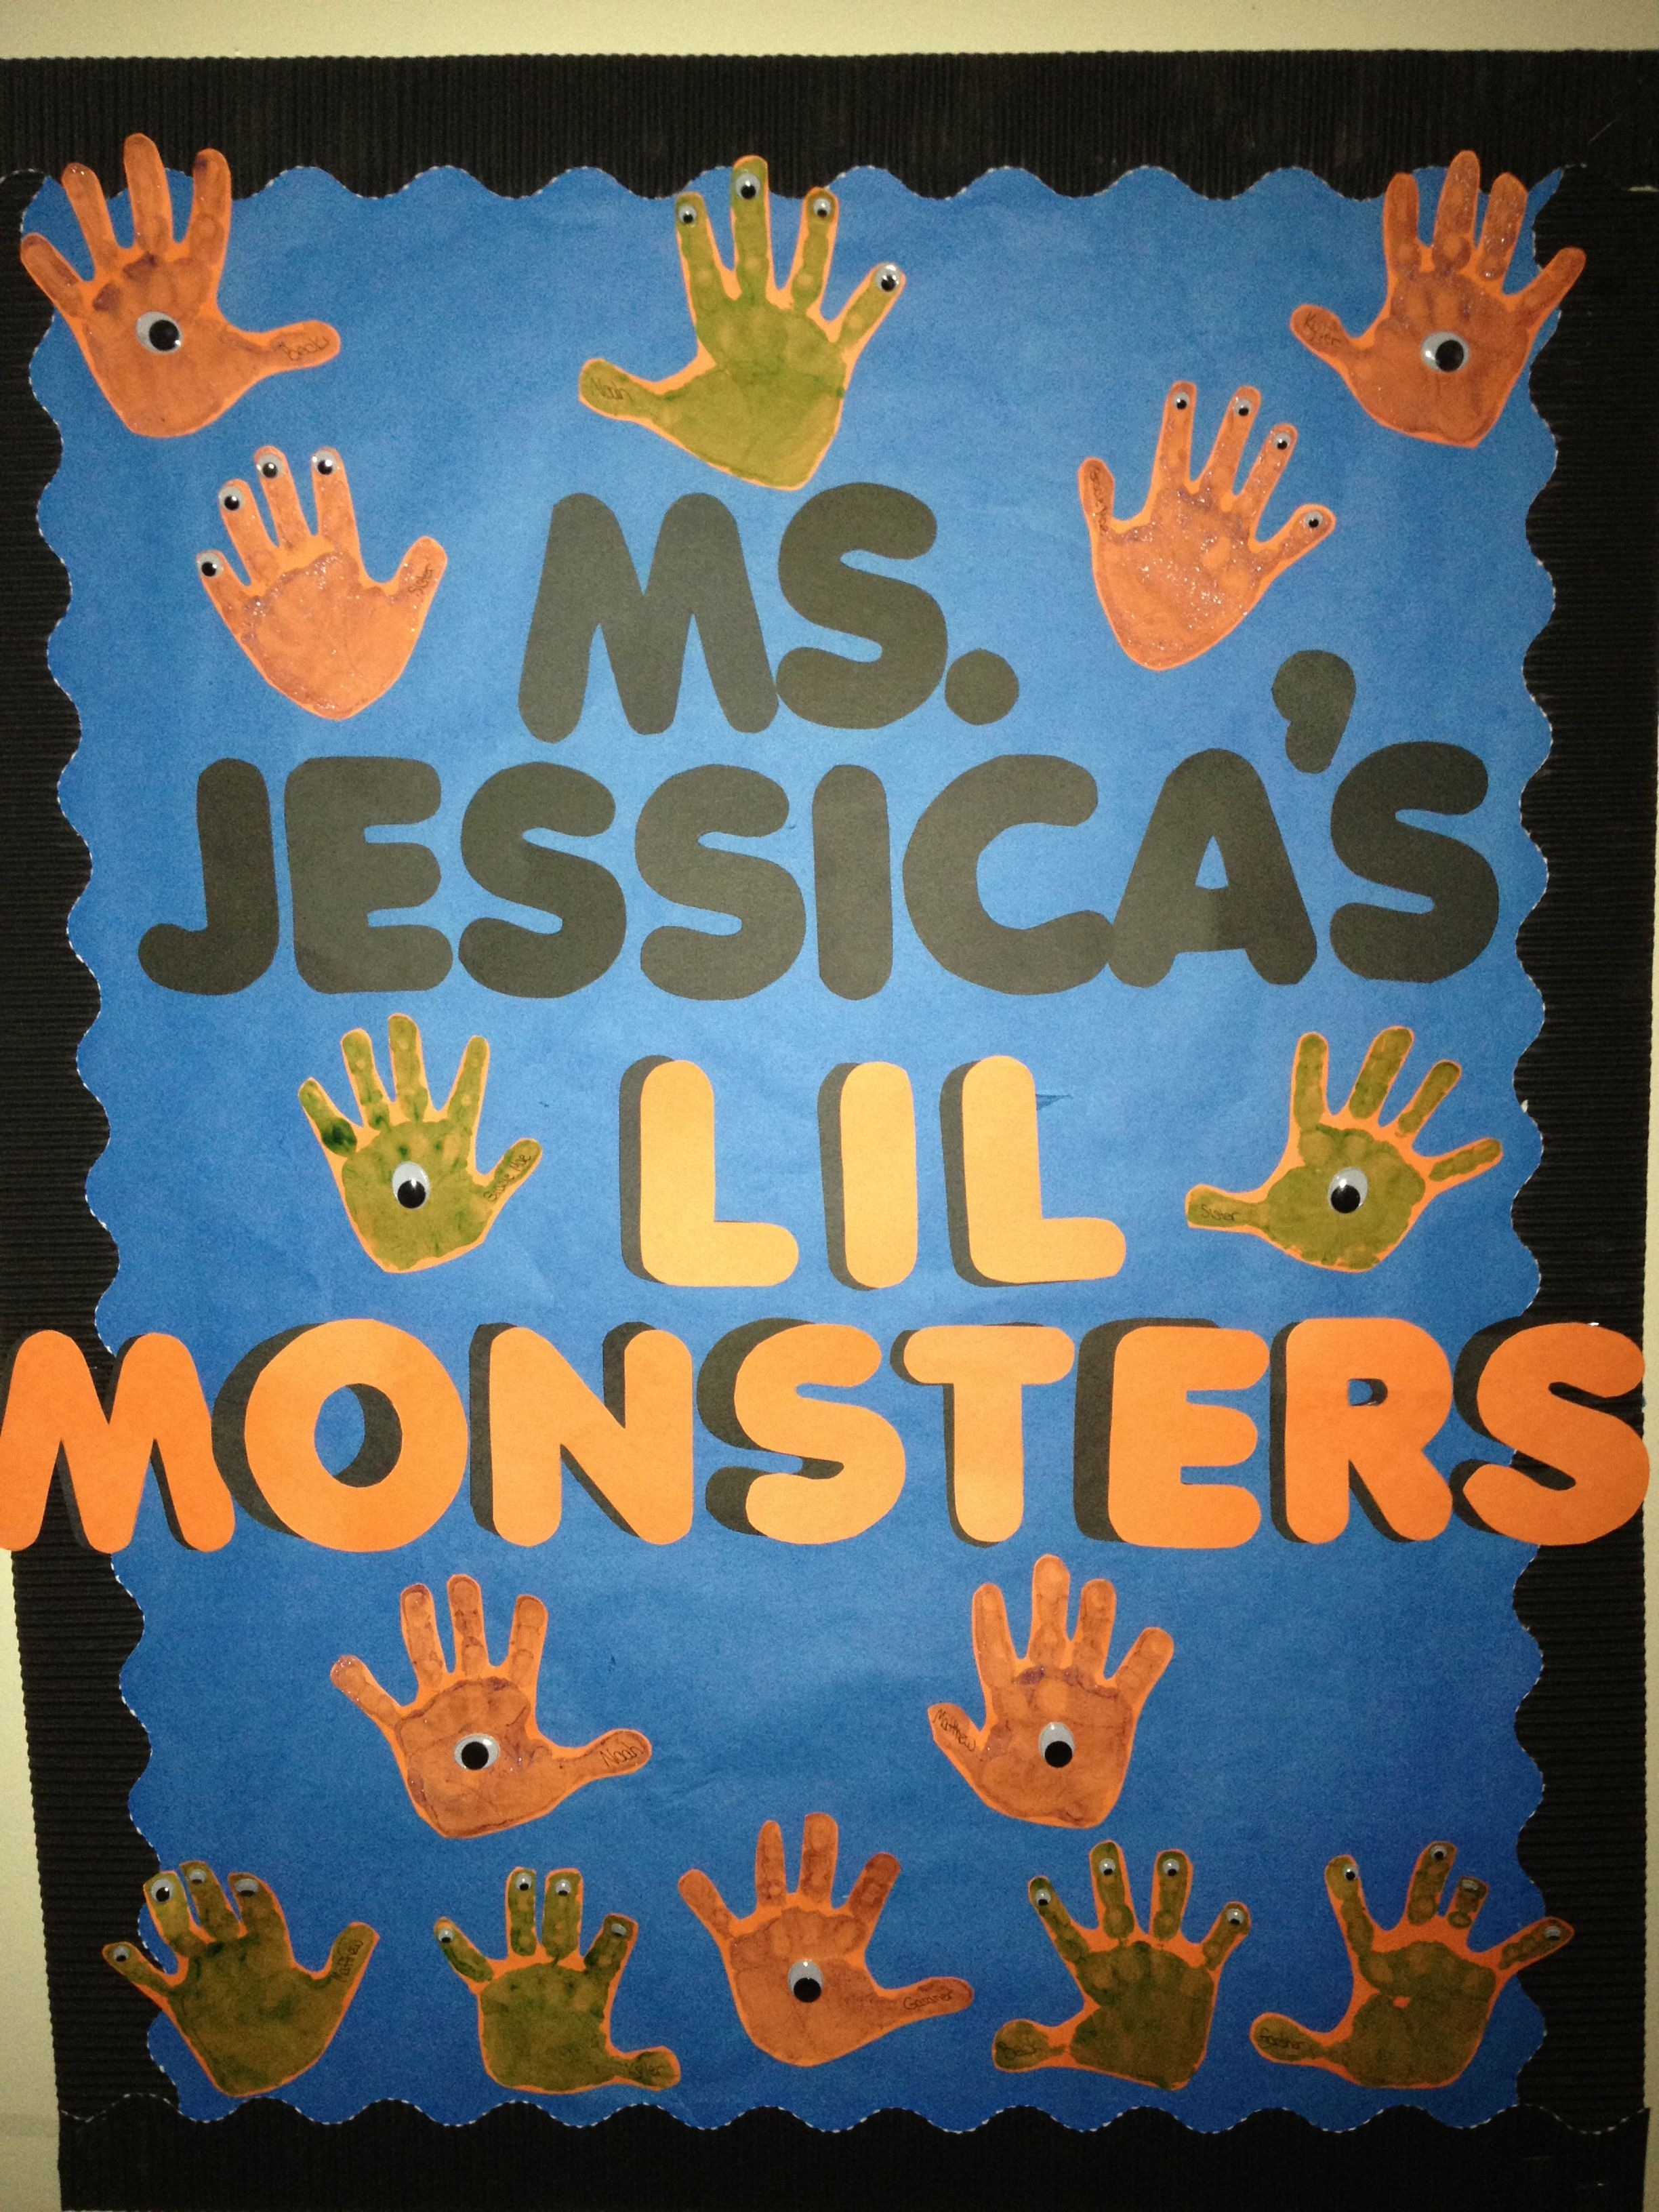 Halloween Bulletin Board Idea But With Monsters Instead Of Handprints